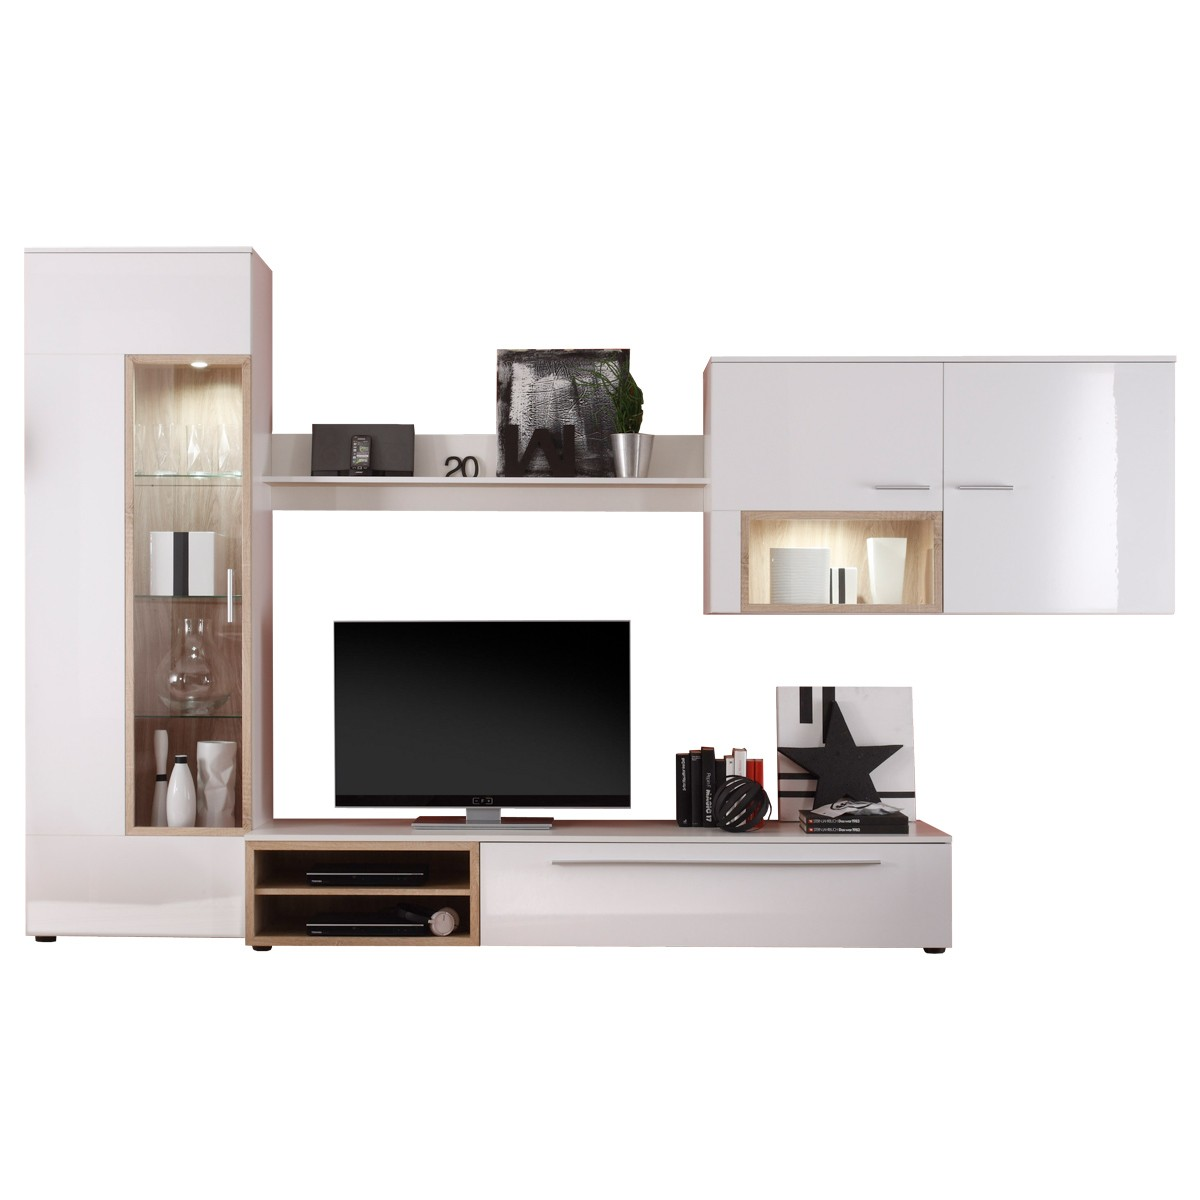 wohnwand anbauwand schrankwand wei hochglanz wei eiche sonoma neu ebay. Black Bedroom Furniture Sets. Home Design Ideas